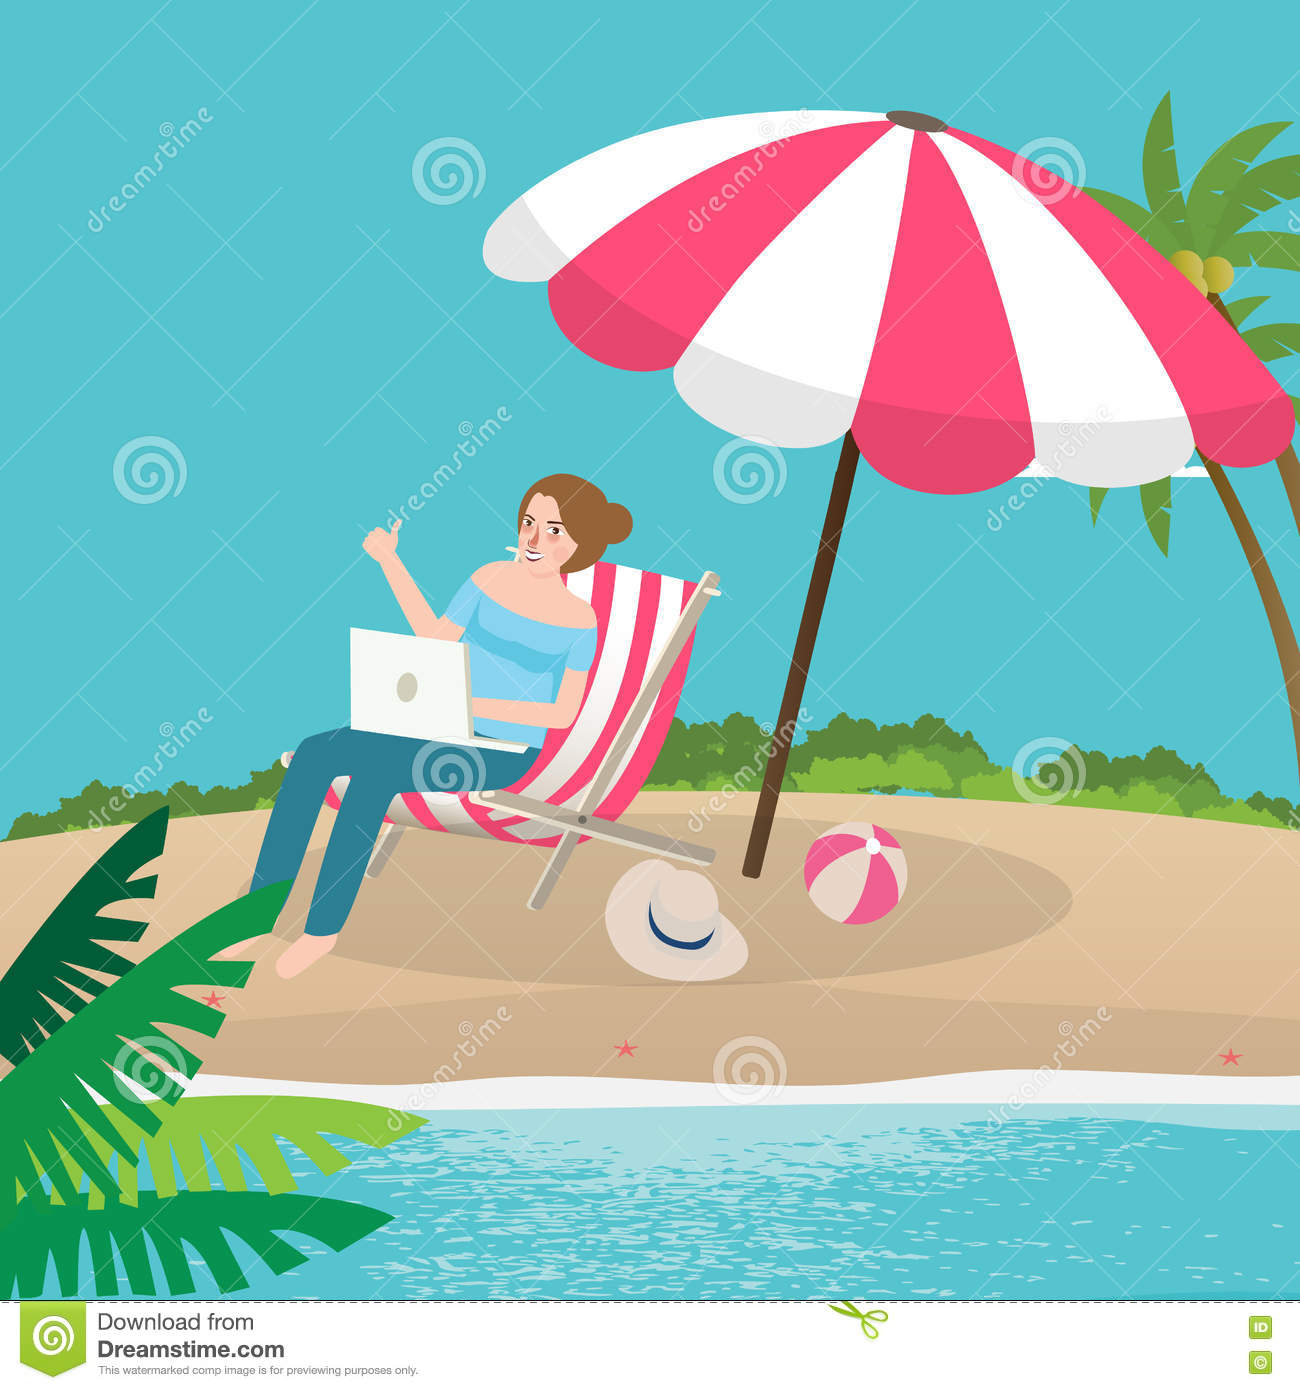 Woman Enjoying At Beach Stock Image Image Of Pleasure: Freelancer Working Remote Enjoy On The Beach Sand With